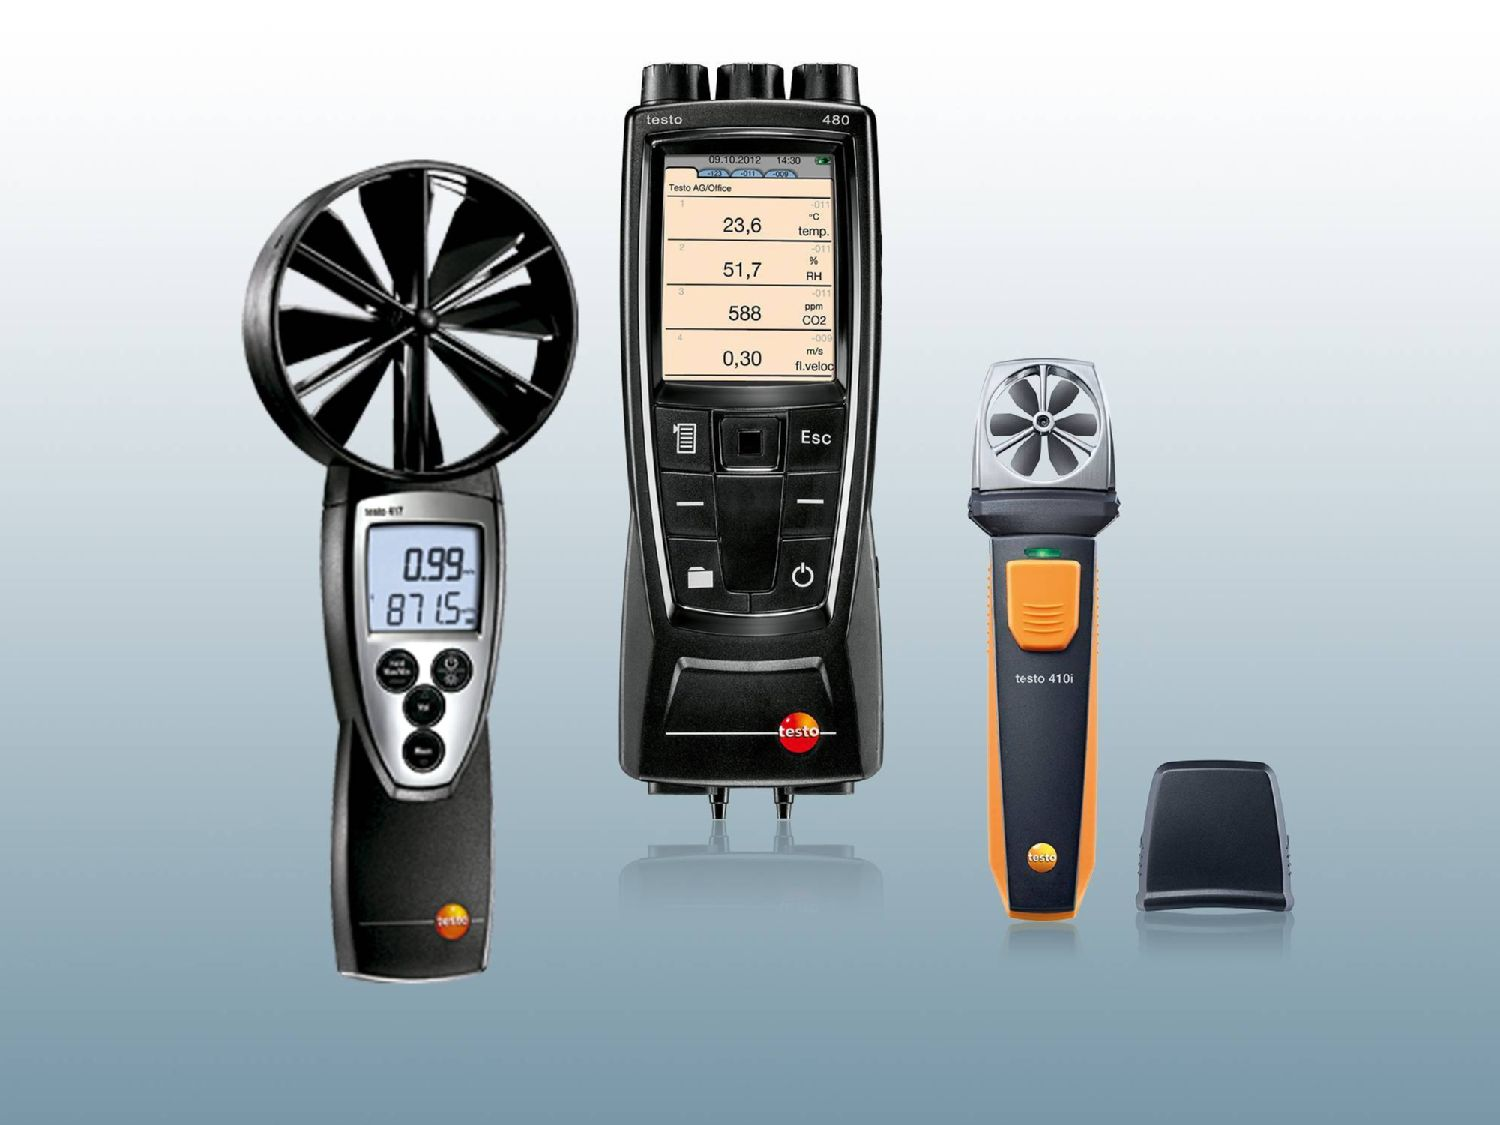 Volumetric flow measuring instruments